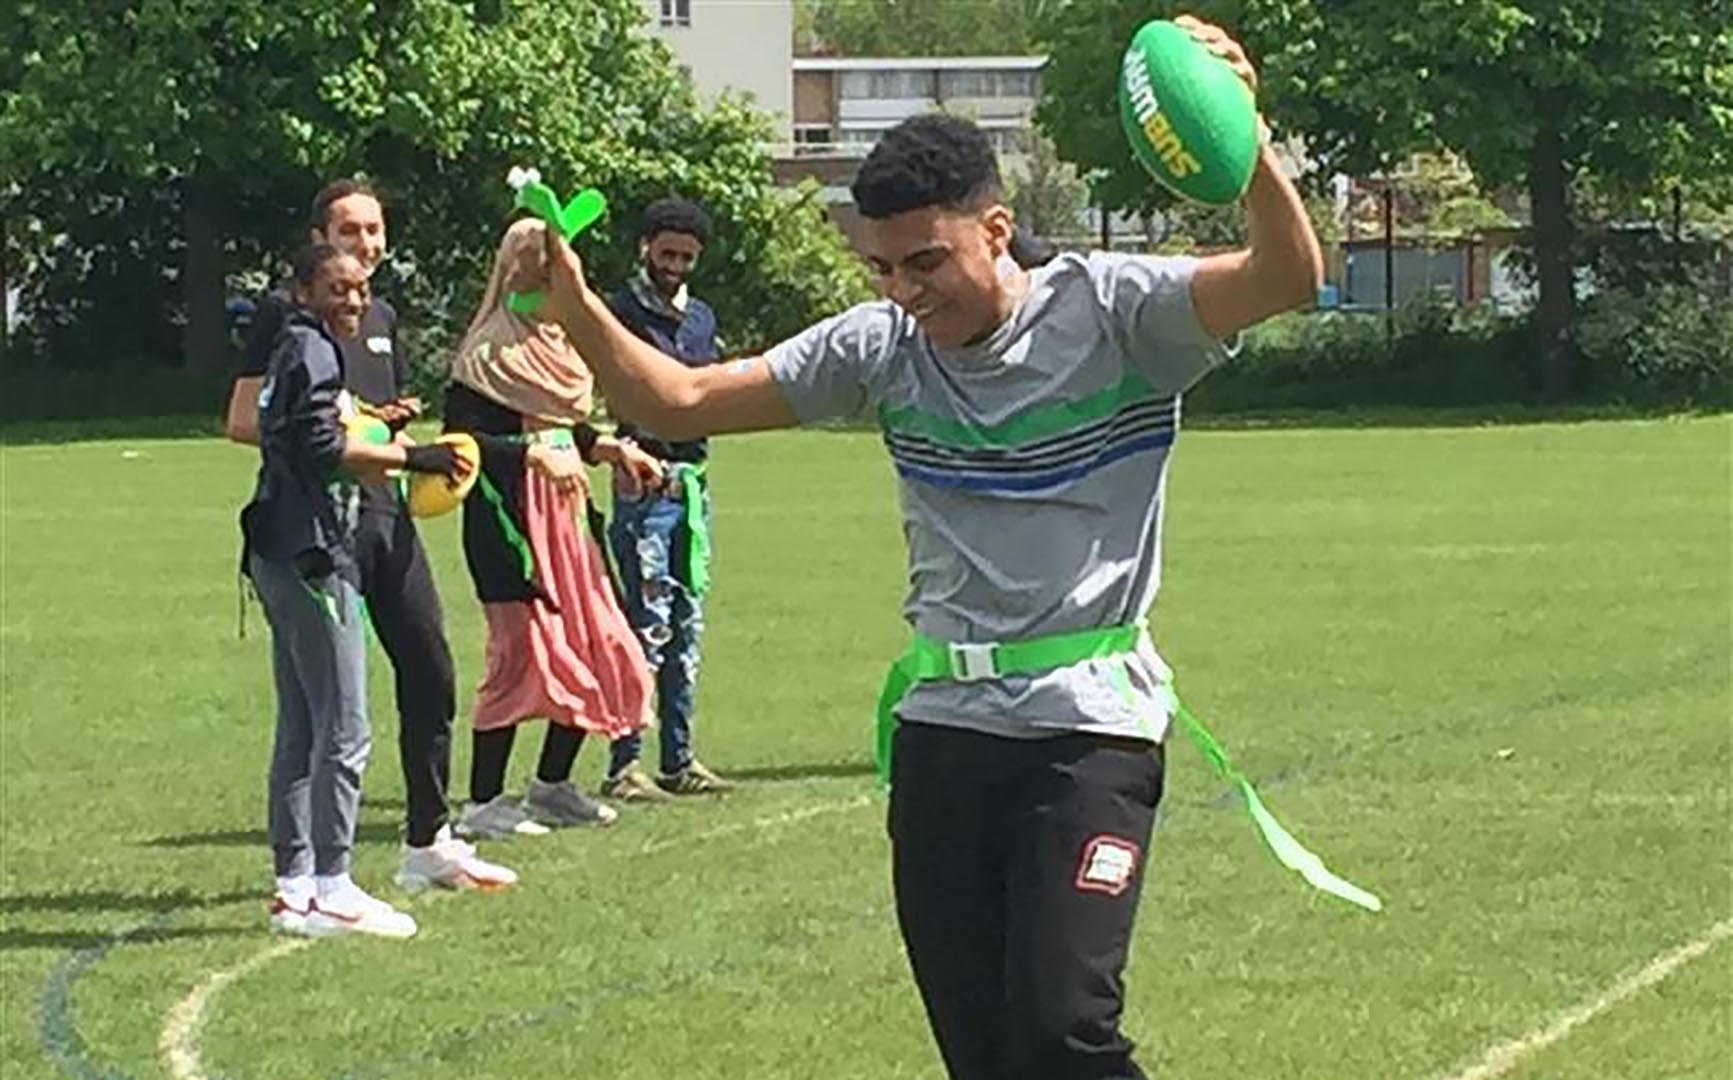 Students playing american football